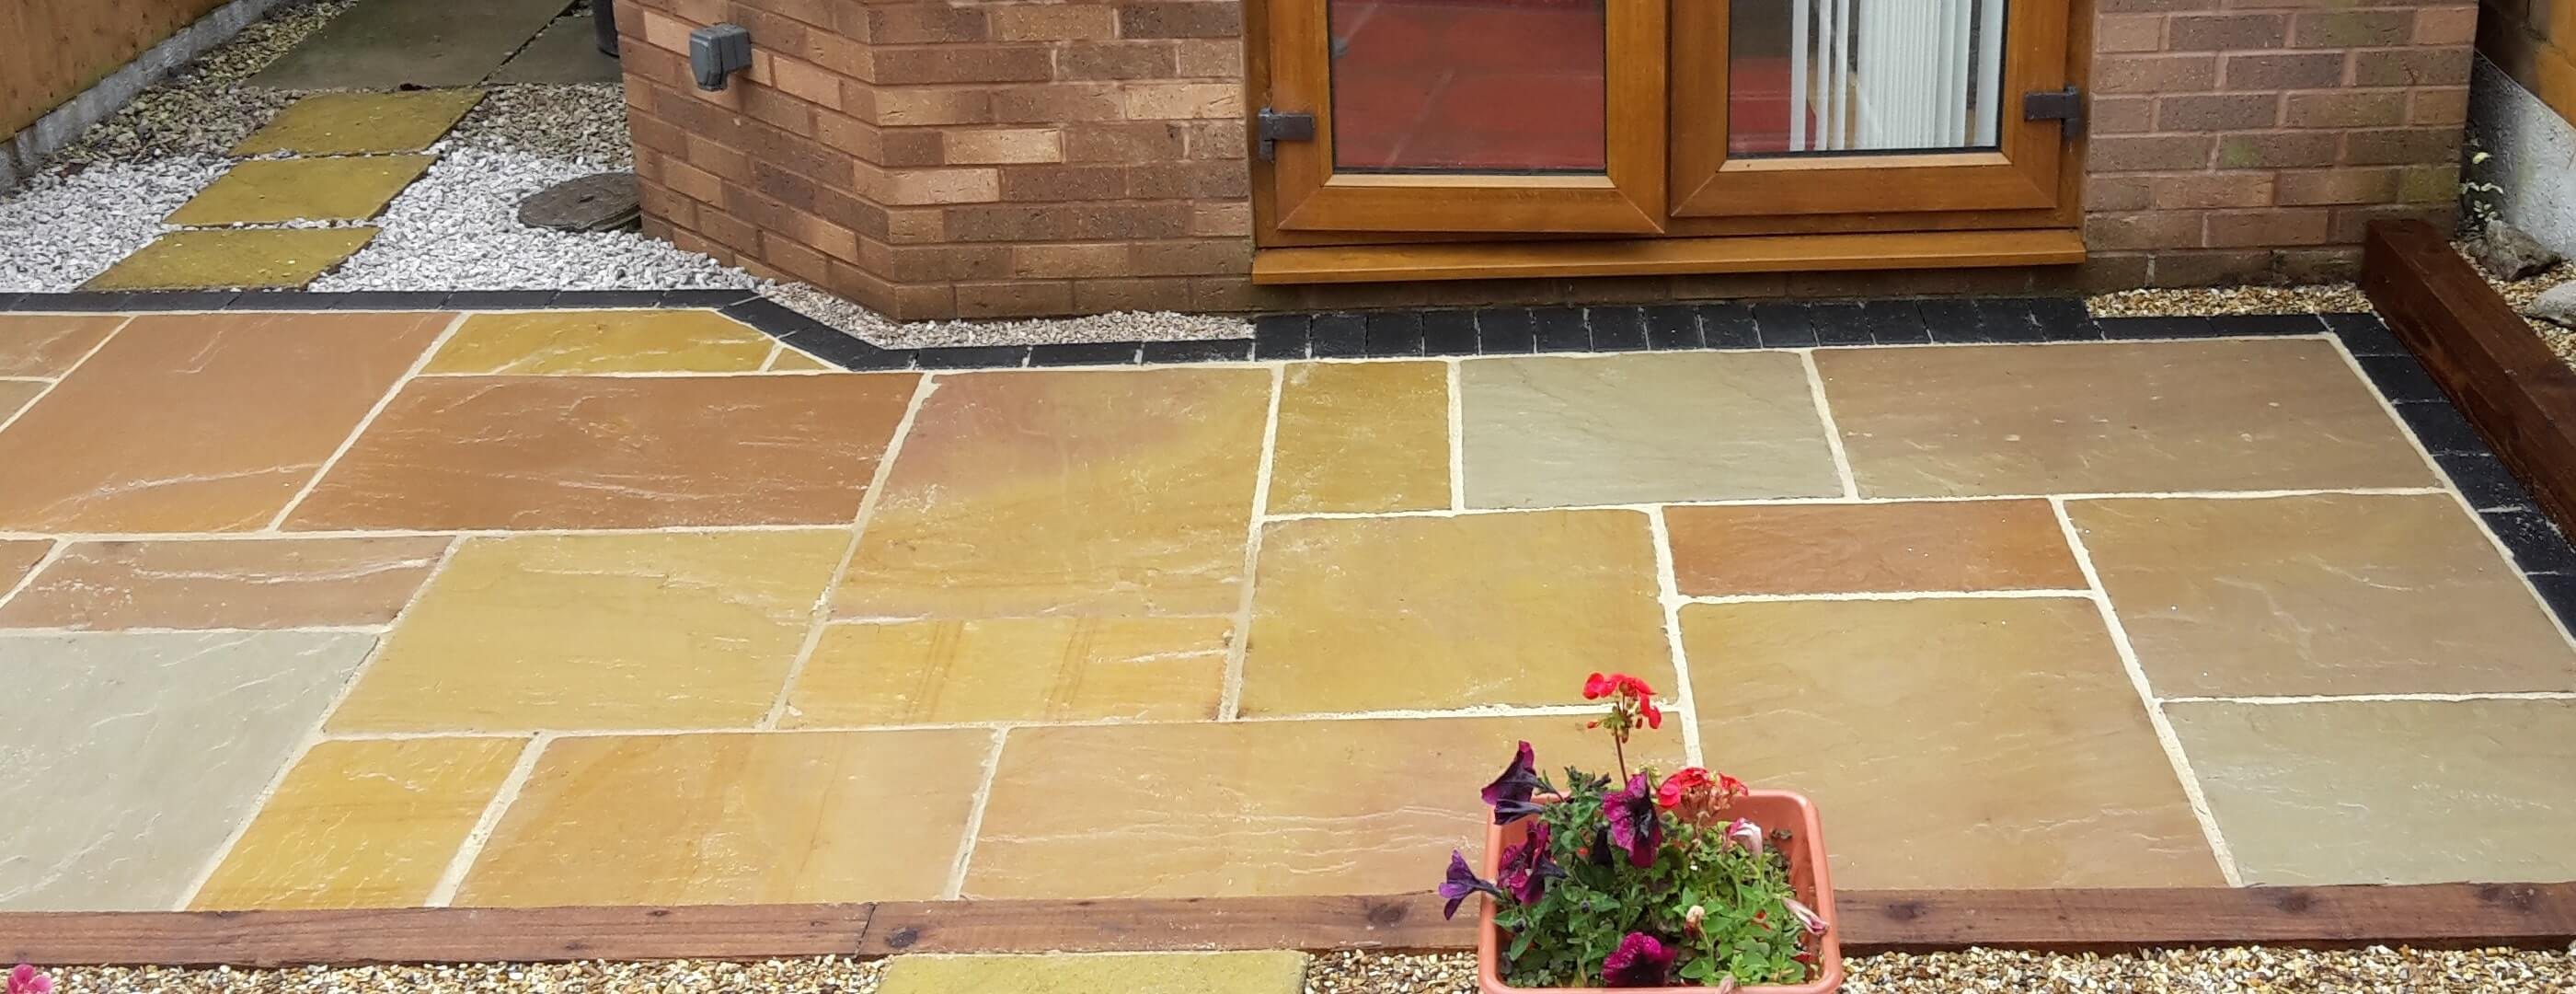 Flagstone patio area